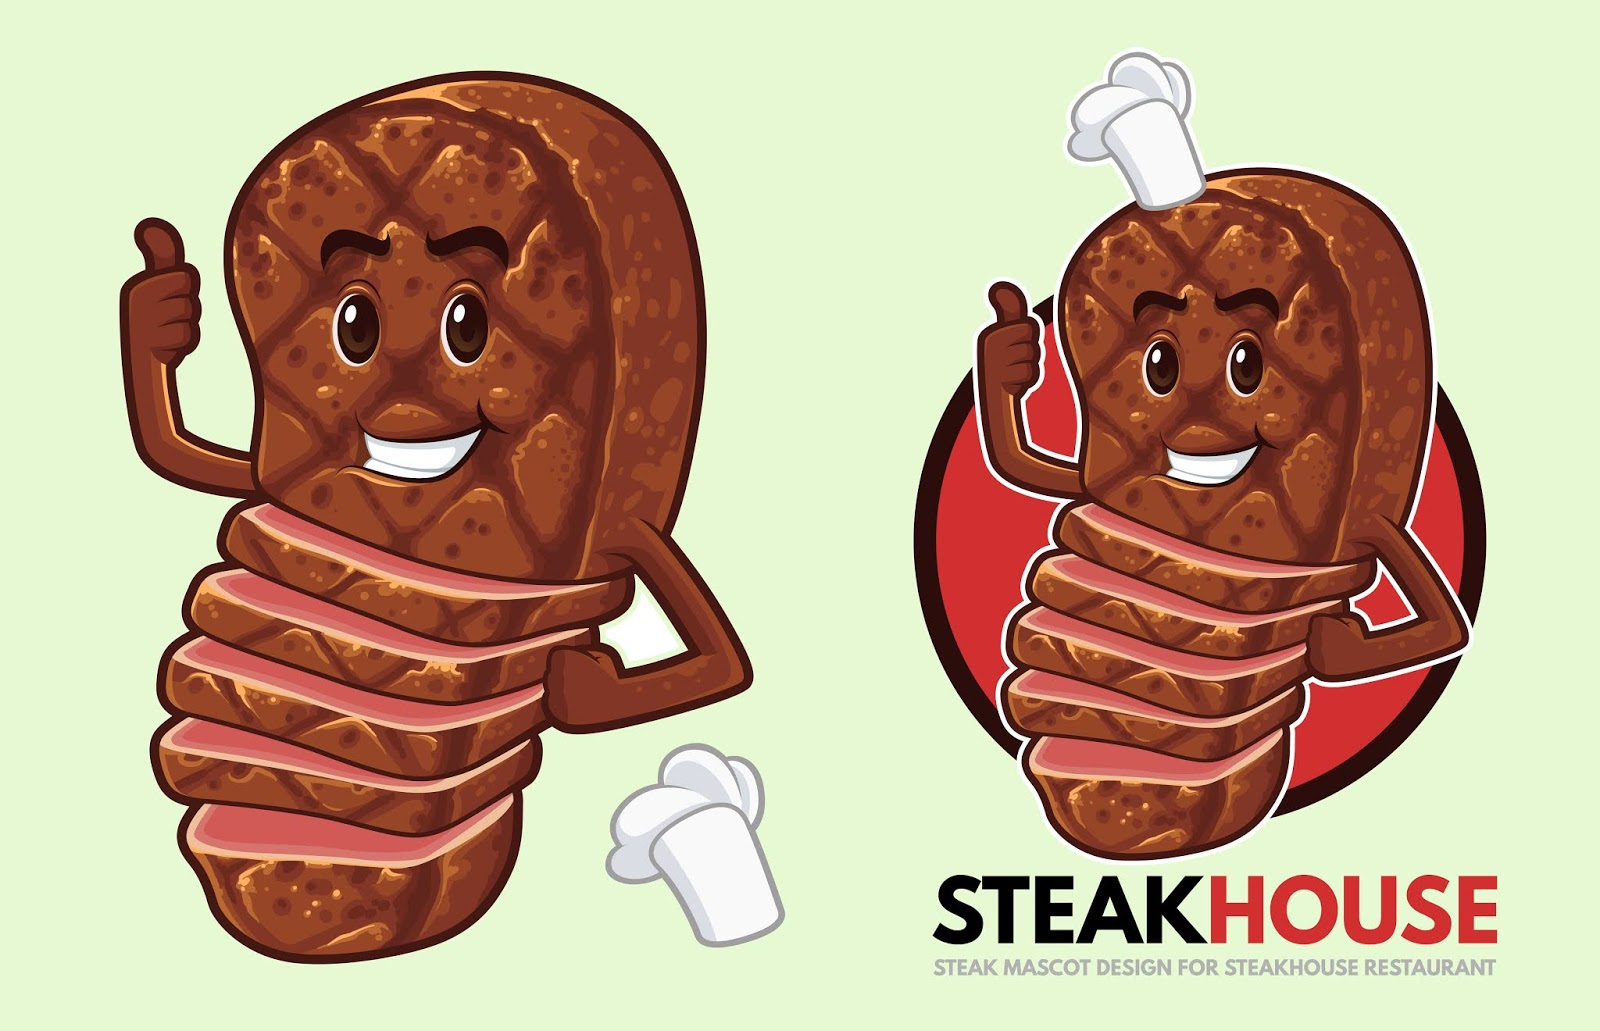 Steak Mascot Design Steakhouse Free Download Vector CDR, AI, EPS and PNG Formats